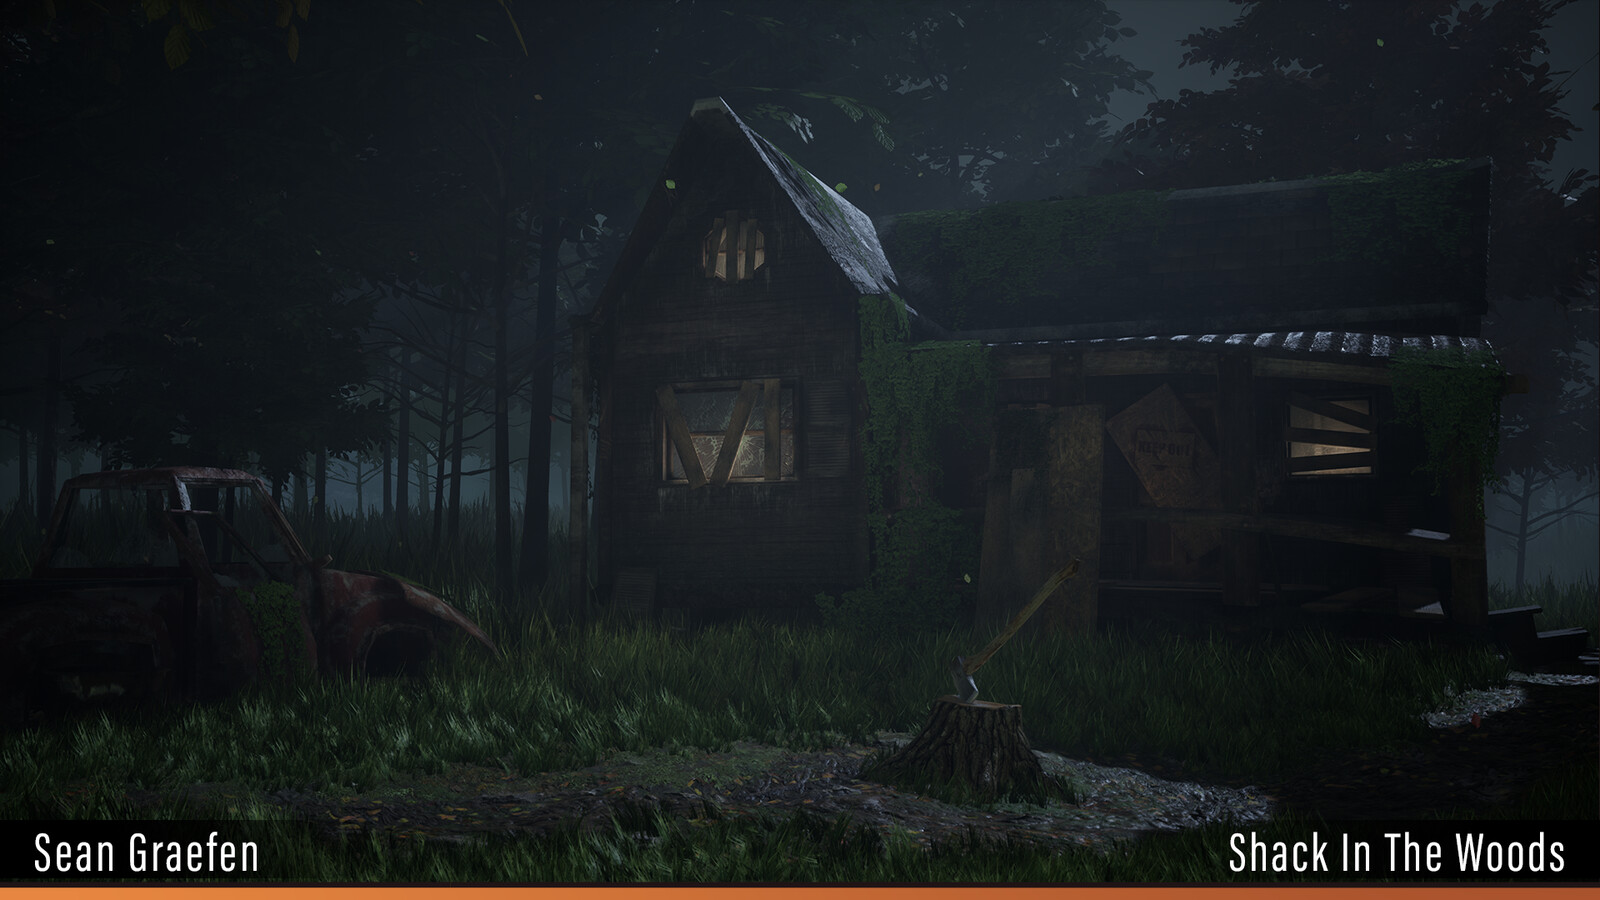 This is one of my earliest environment projects that I completed.  It features a run-down shack that is decaying in a forest.  The goal was to learn the basics of modeling, texturing, set dressing, and lighting.